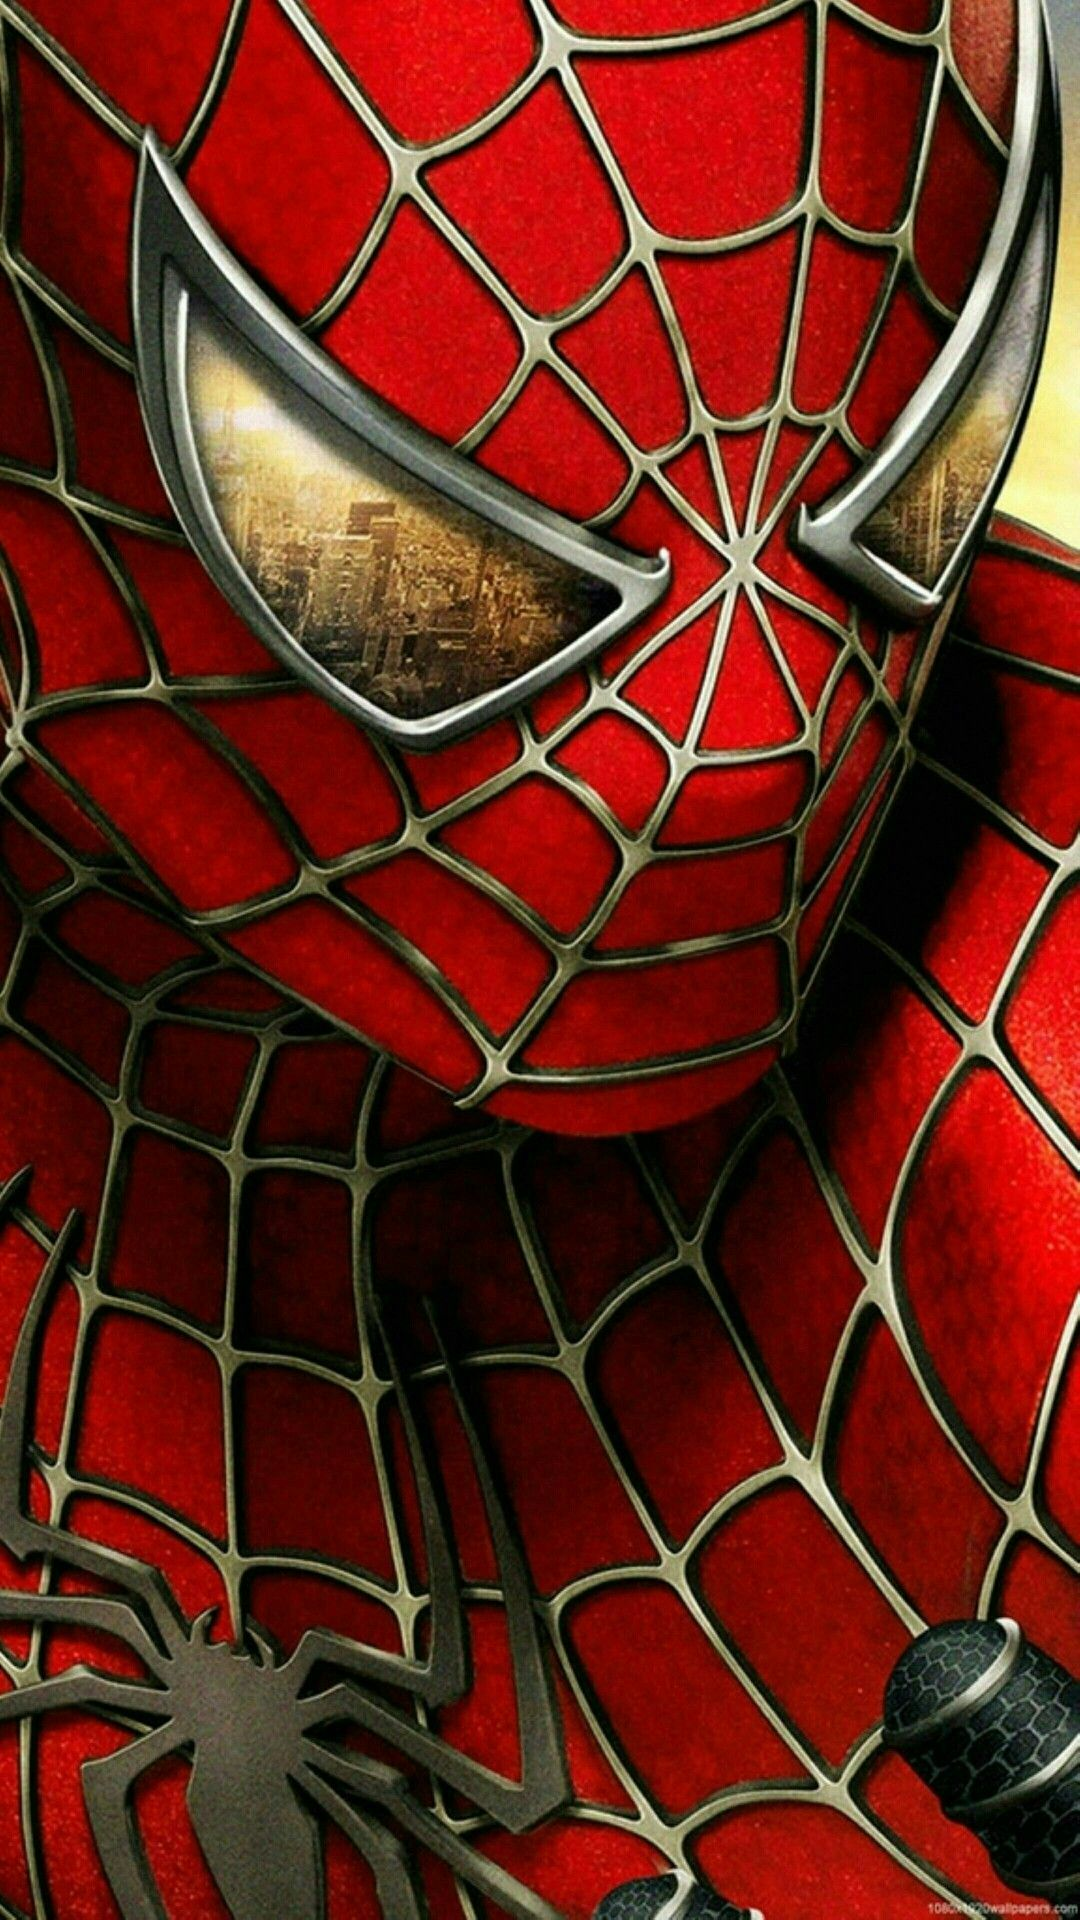 Pin by Jon Mccutchan on Superheroes Amazing spiderman